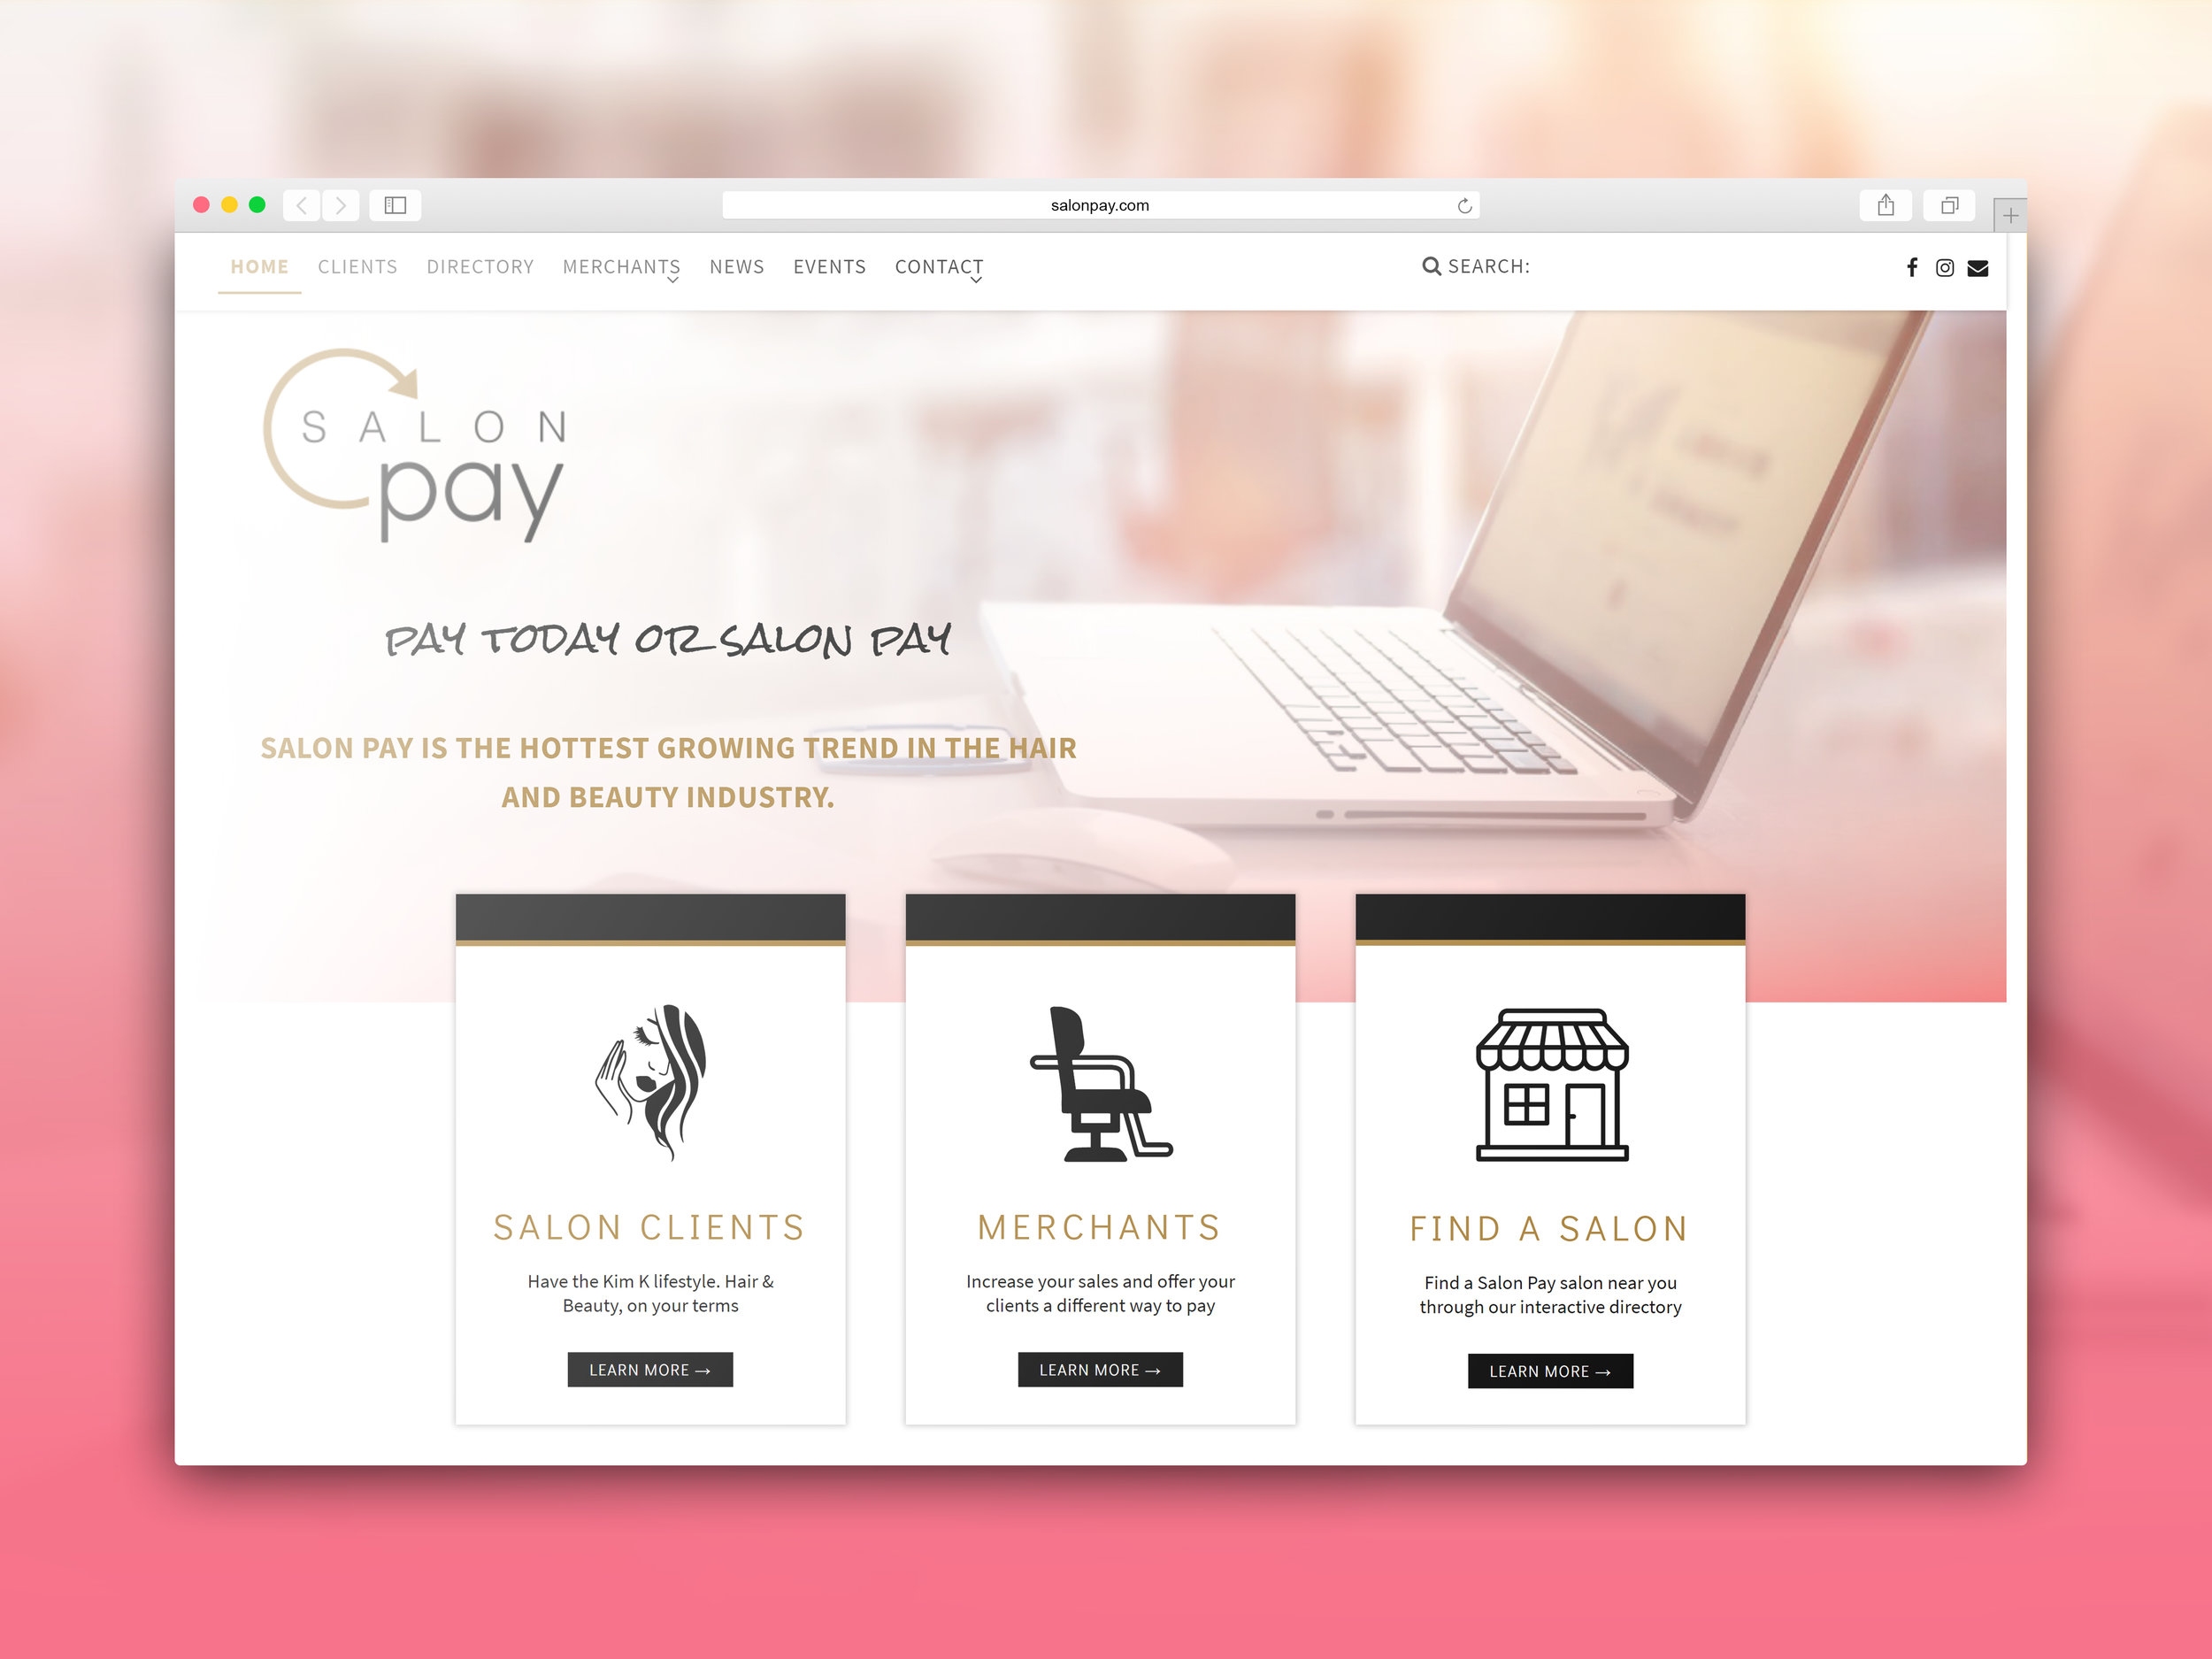 websitemockup-salonpay.jpg